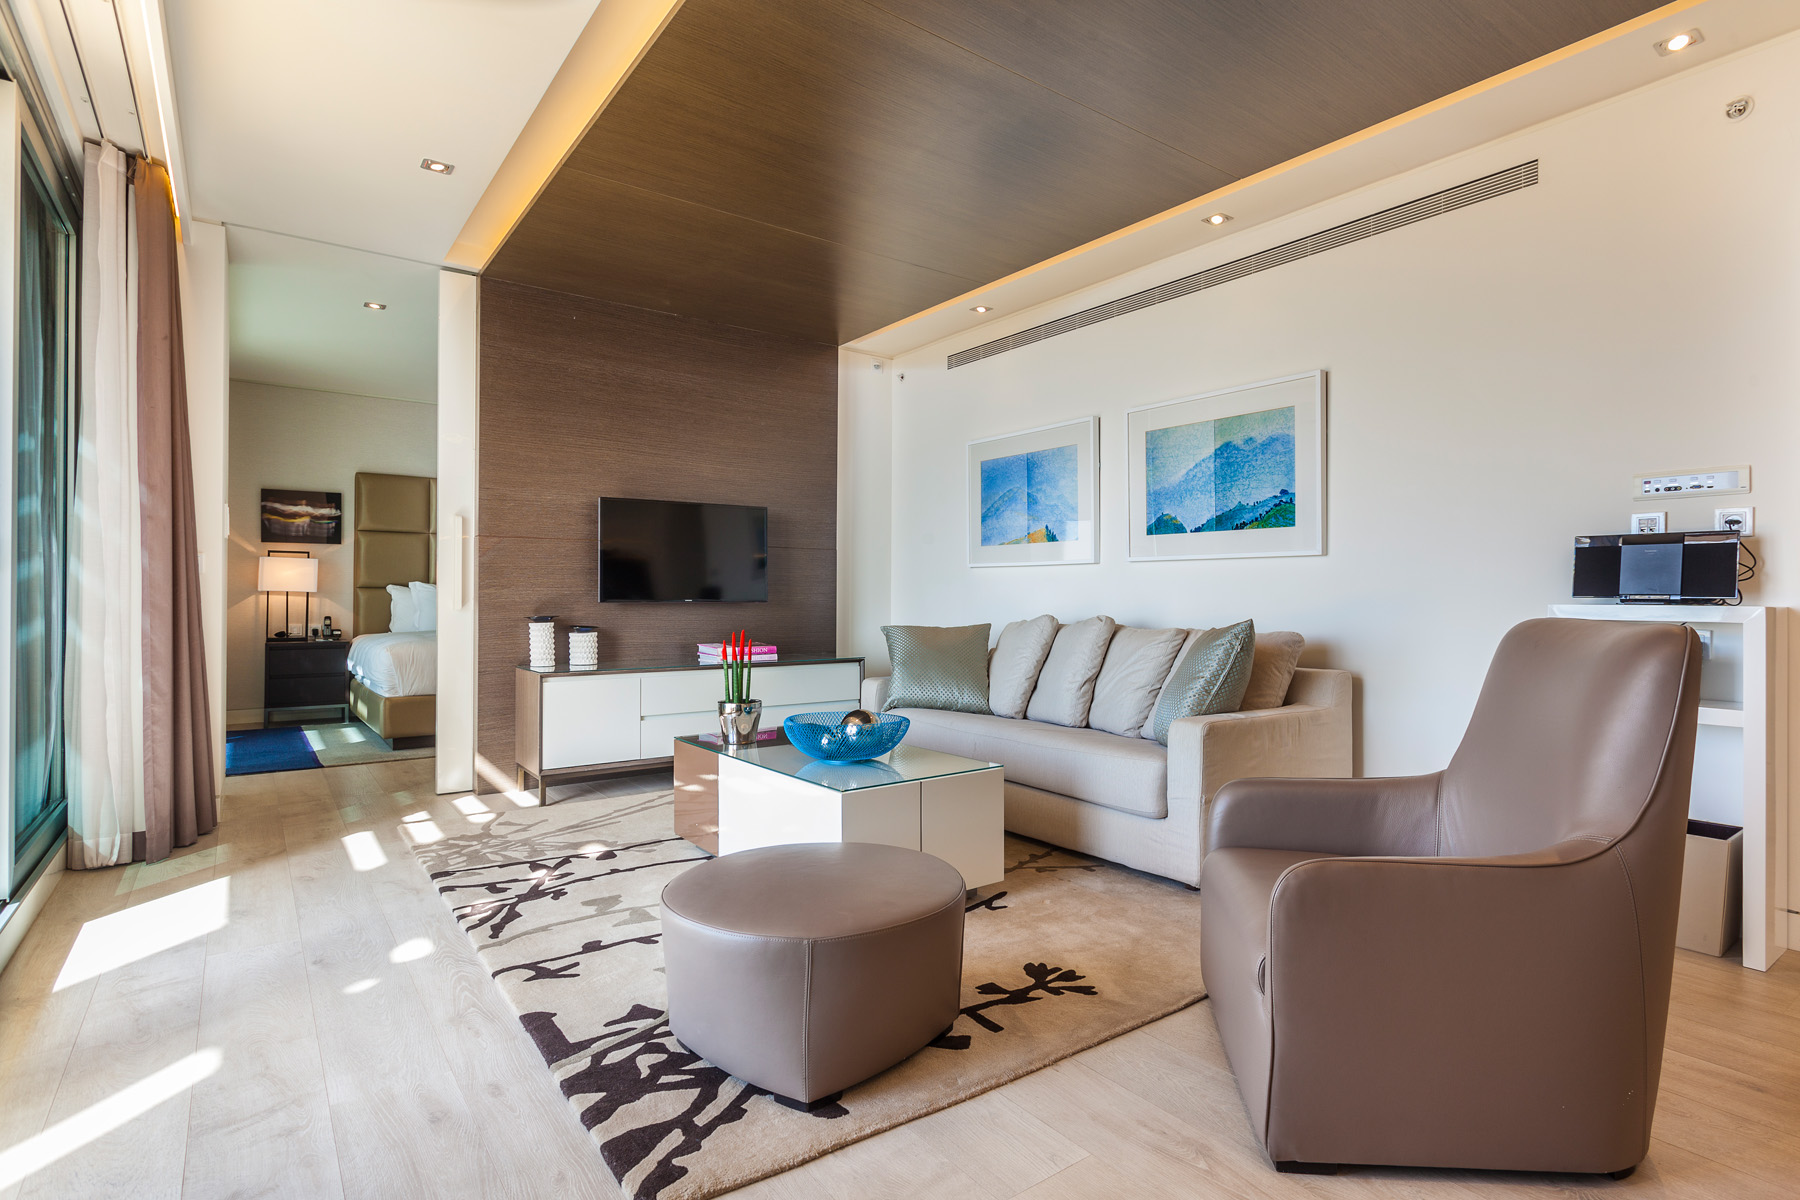 Apartment for Sale at Ritz - Carlton Residences Herzliya Marina View Herzliya, Israel Israel